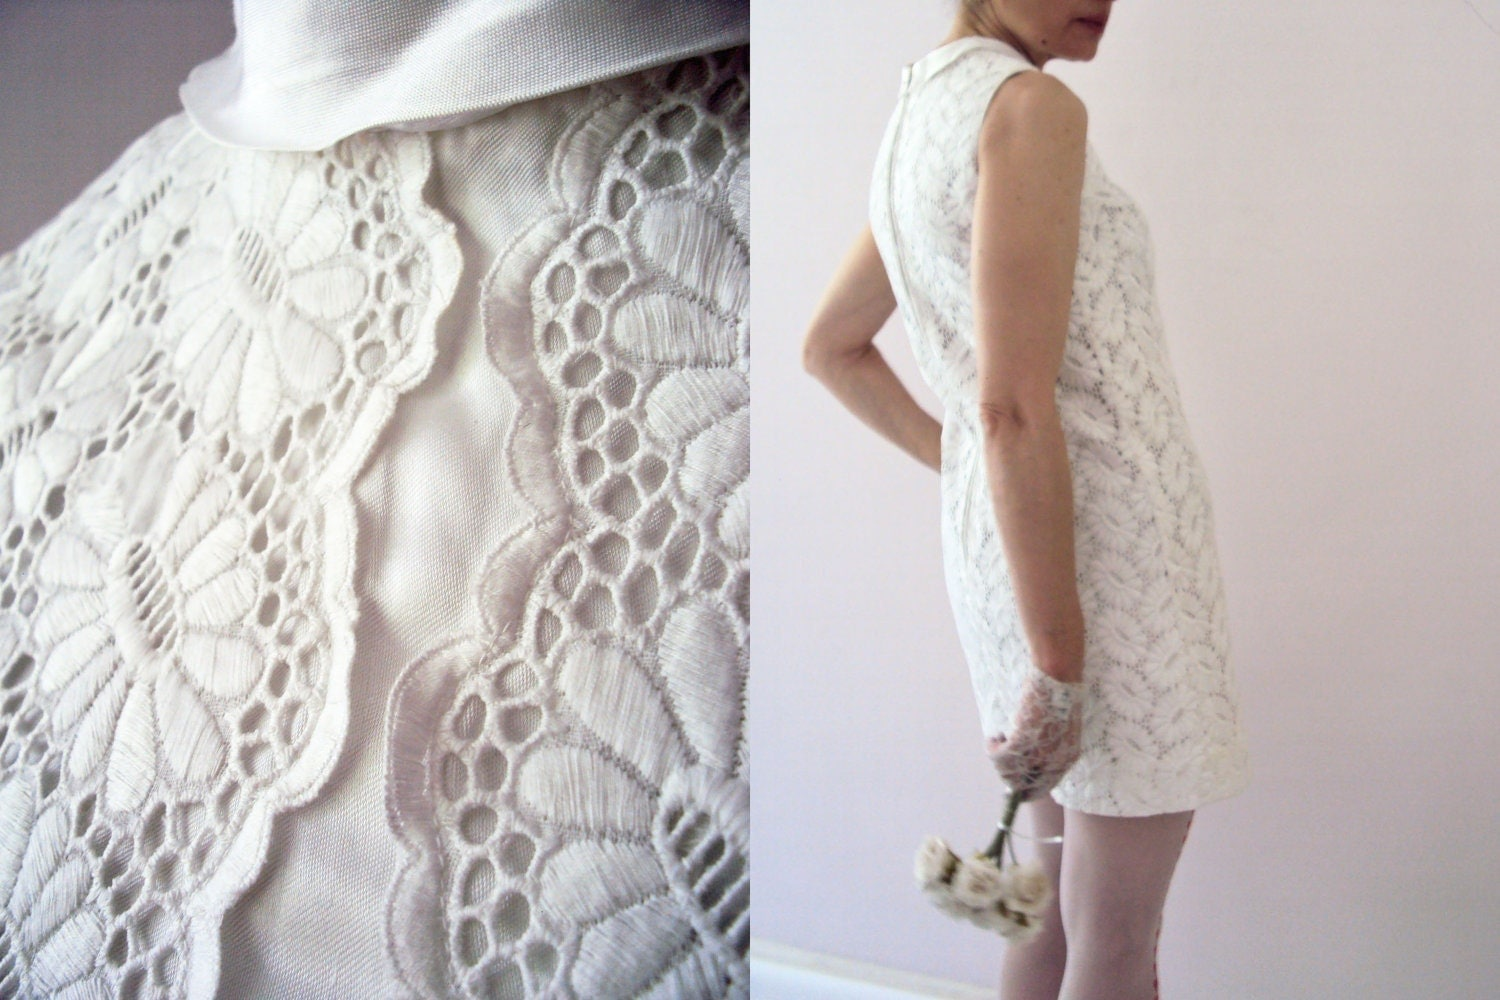 Vintage 70s Hippie Prairie Girl Wedding Dress Gown S M: Vintage 60s White Cotton Lace Mod Short Wedding Dress Mini